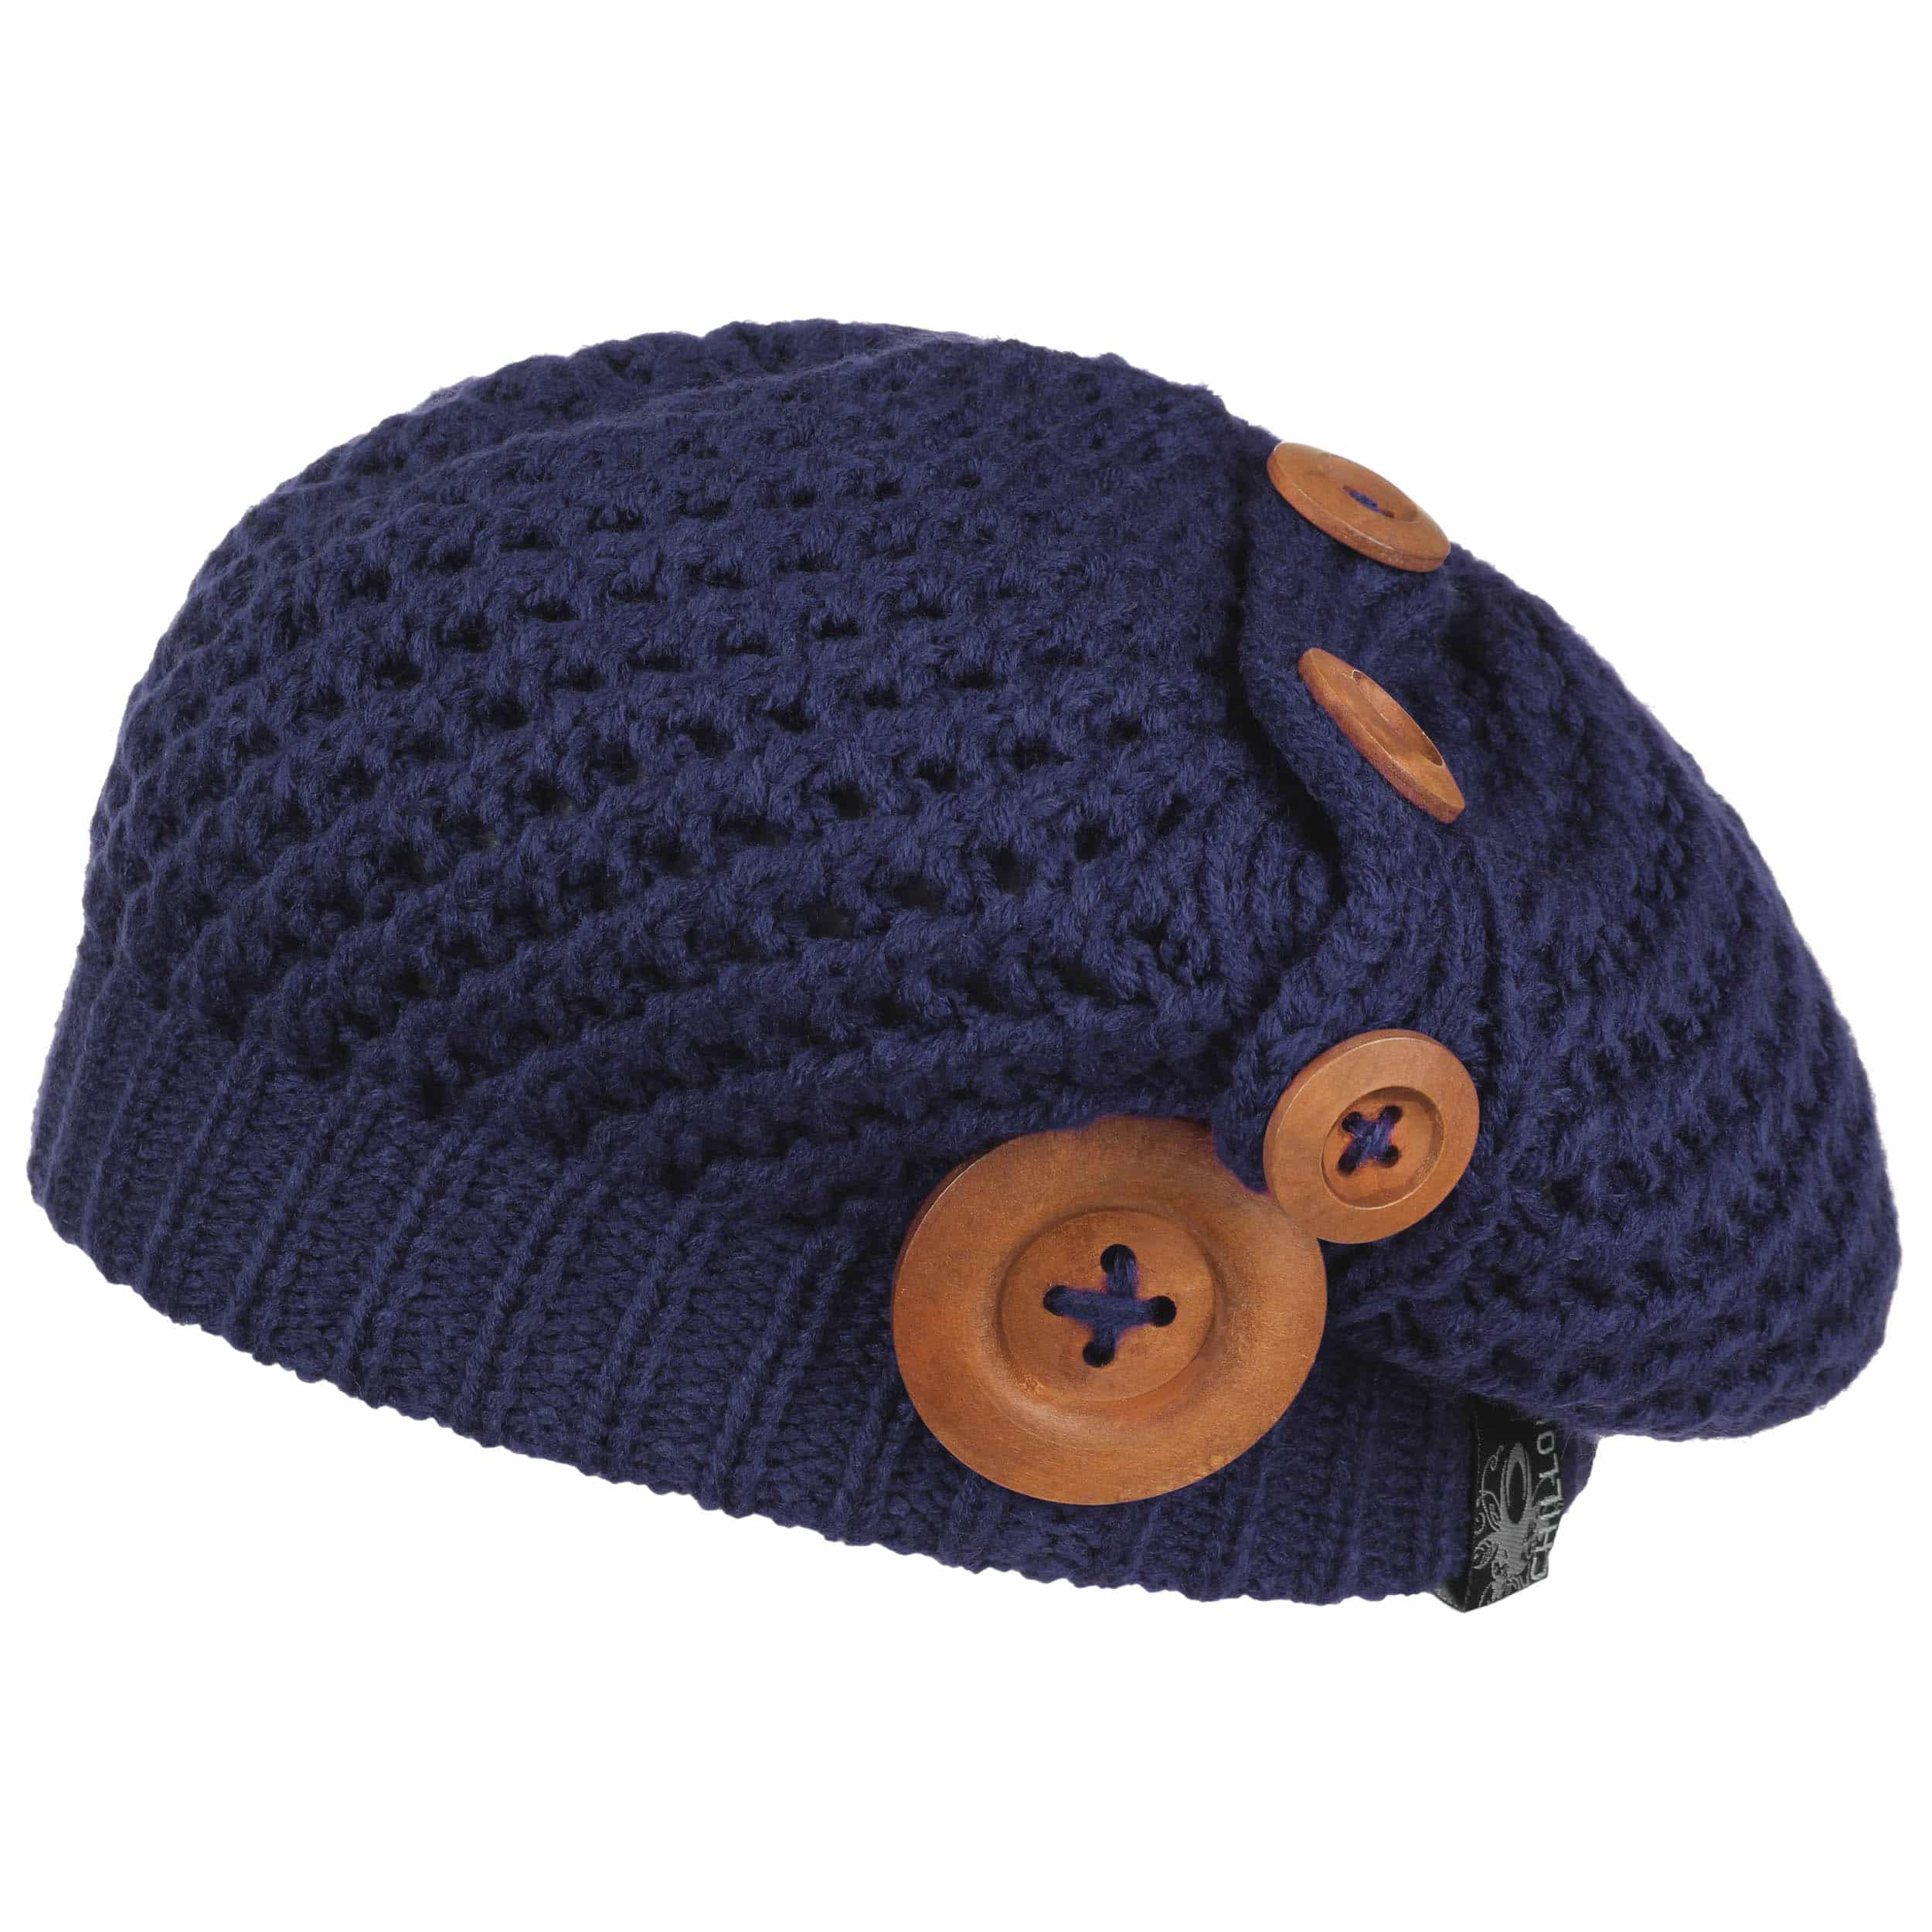 ... Nelly Knit Beret by Chillouts - navy 5 ... 8d29c53bbab